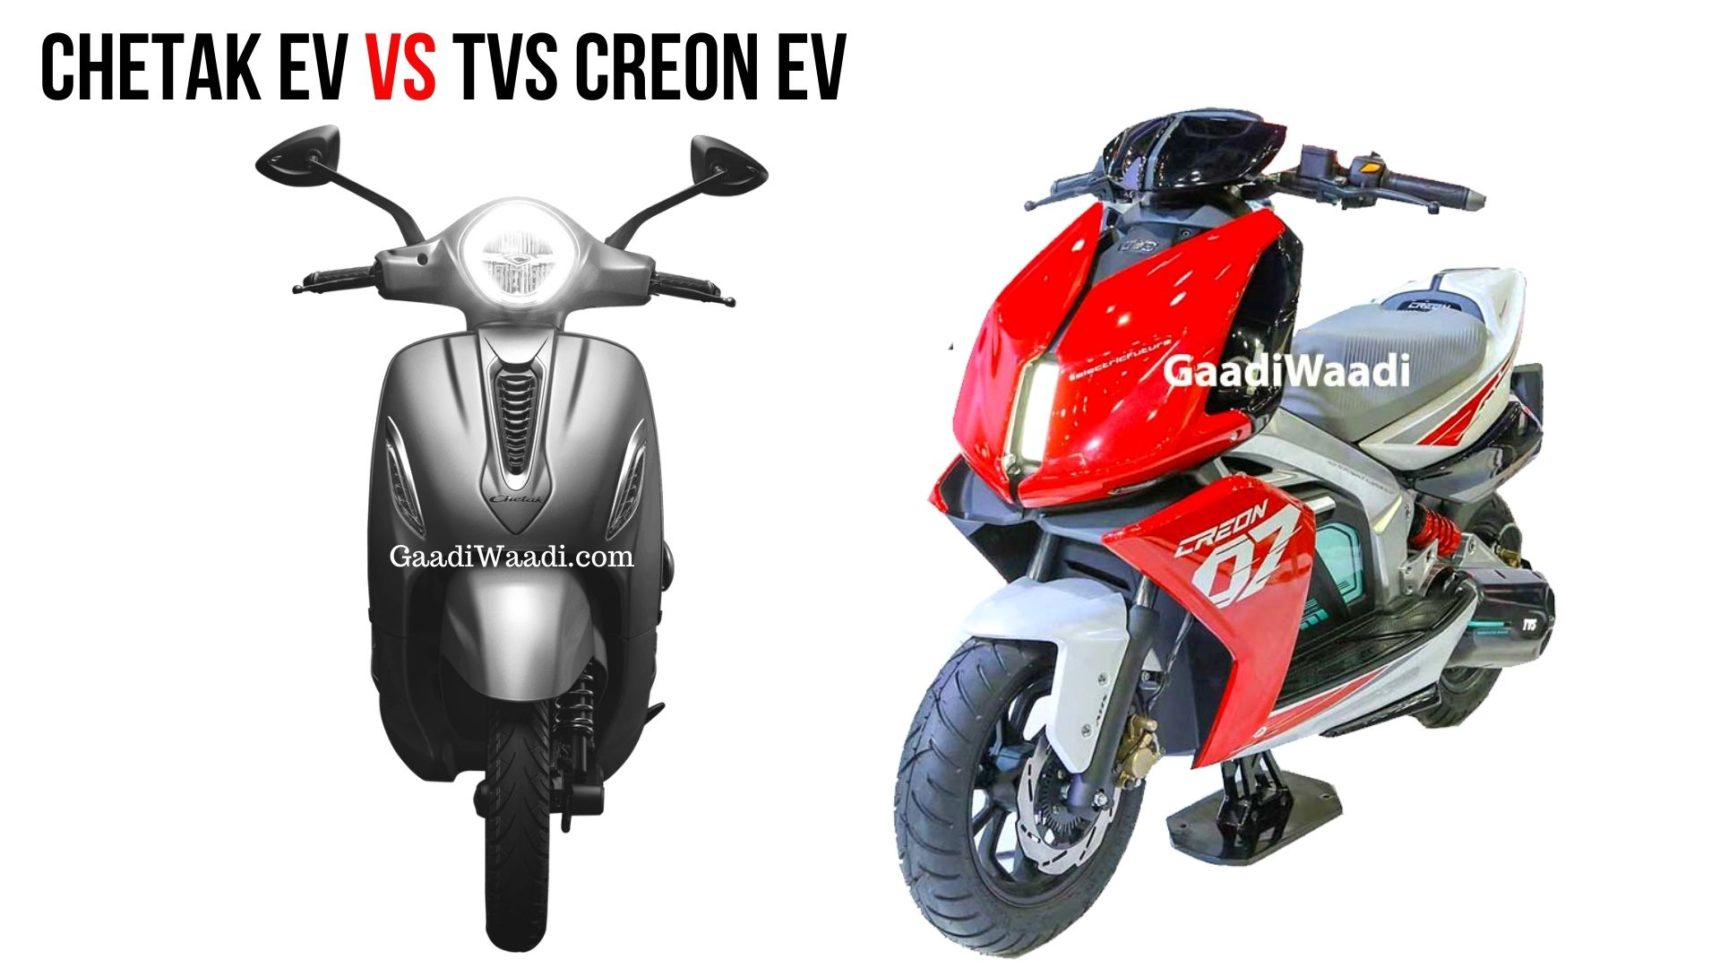 chetak electric vs creon electric front